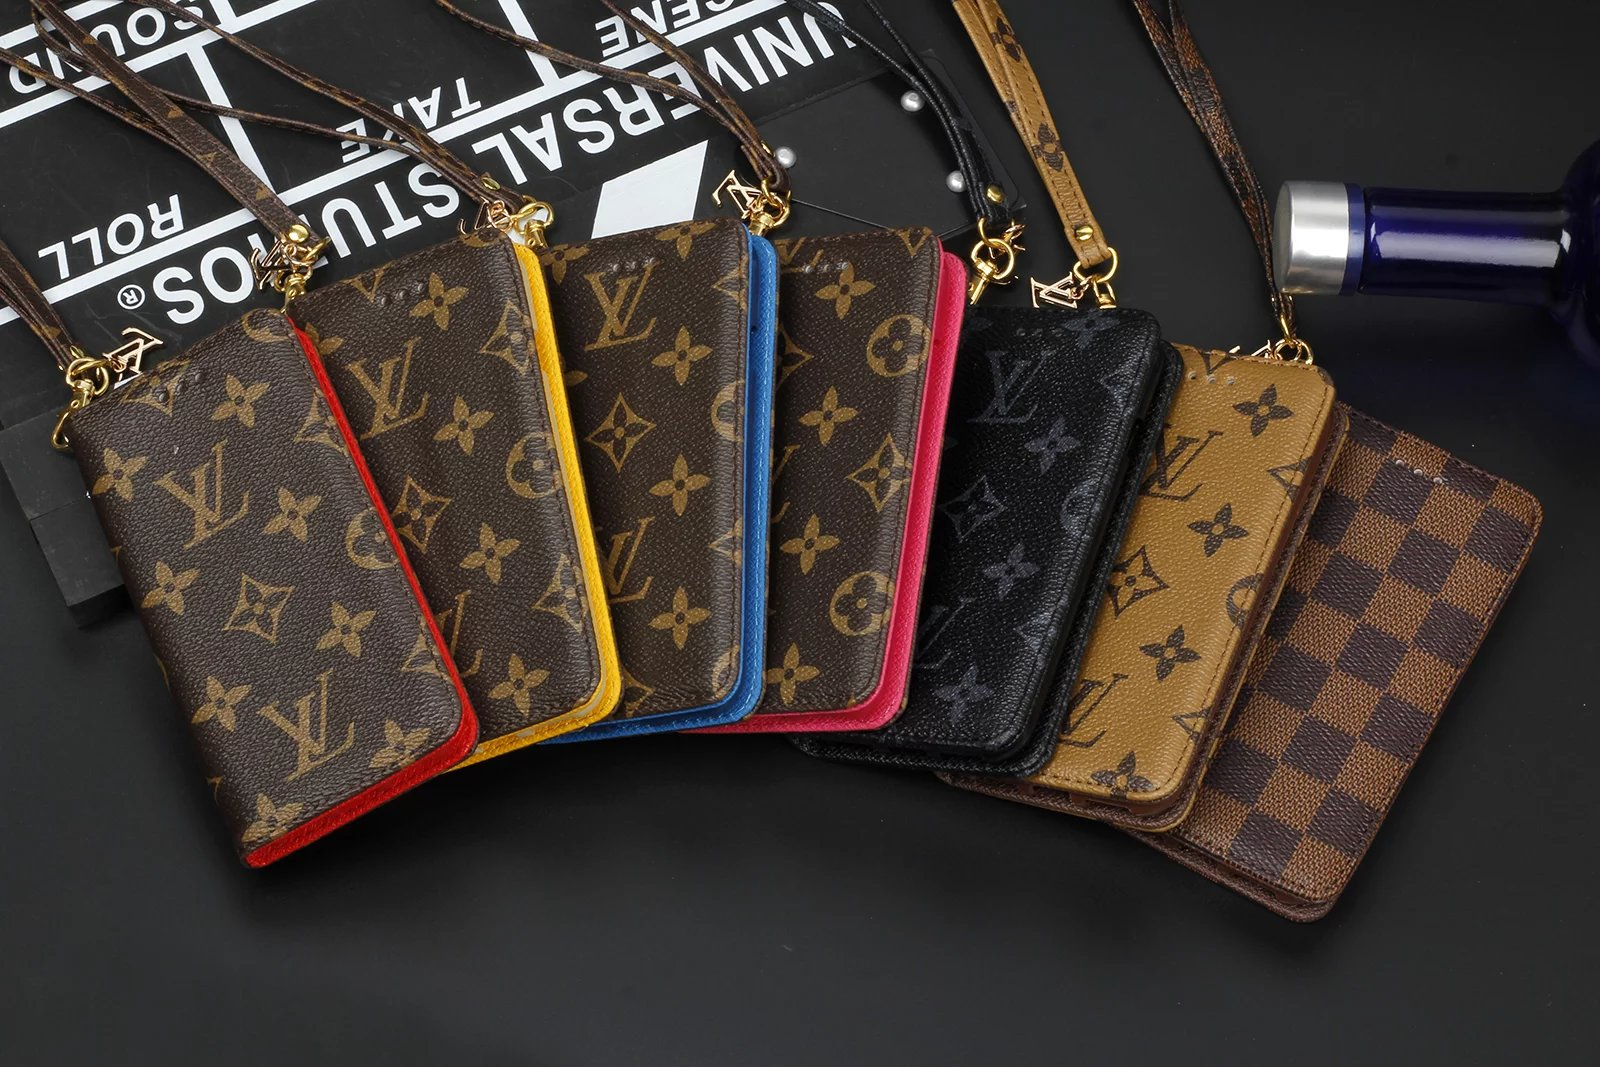 eigene iphone hülle erstellen handyhülle iphone selbst gestalten Louis Vuitton iphone6s plus hülle iphone ledertasche smartphone ca6s bedrucken individuelle smartphone hülle wann kommt neues iphone cover für iphone 6s Plus iphone 6s Plus hale